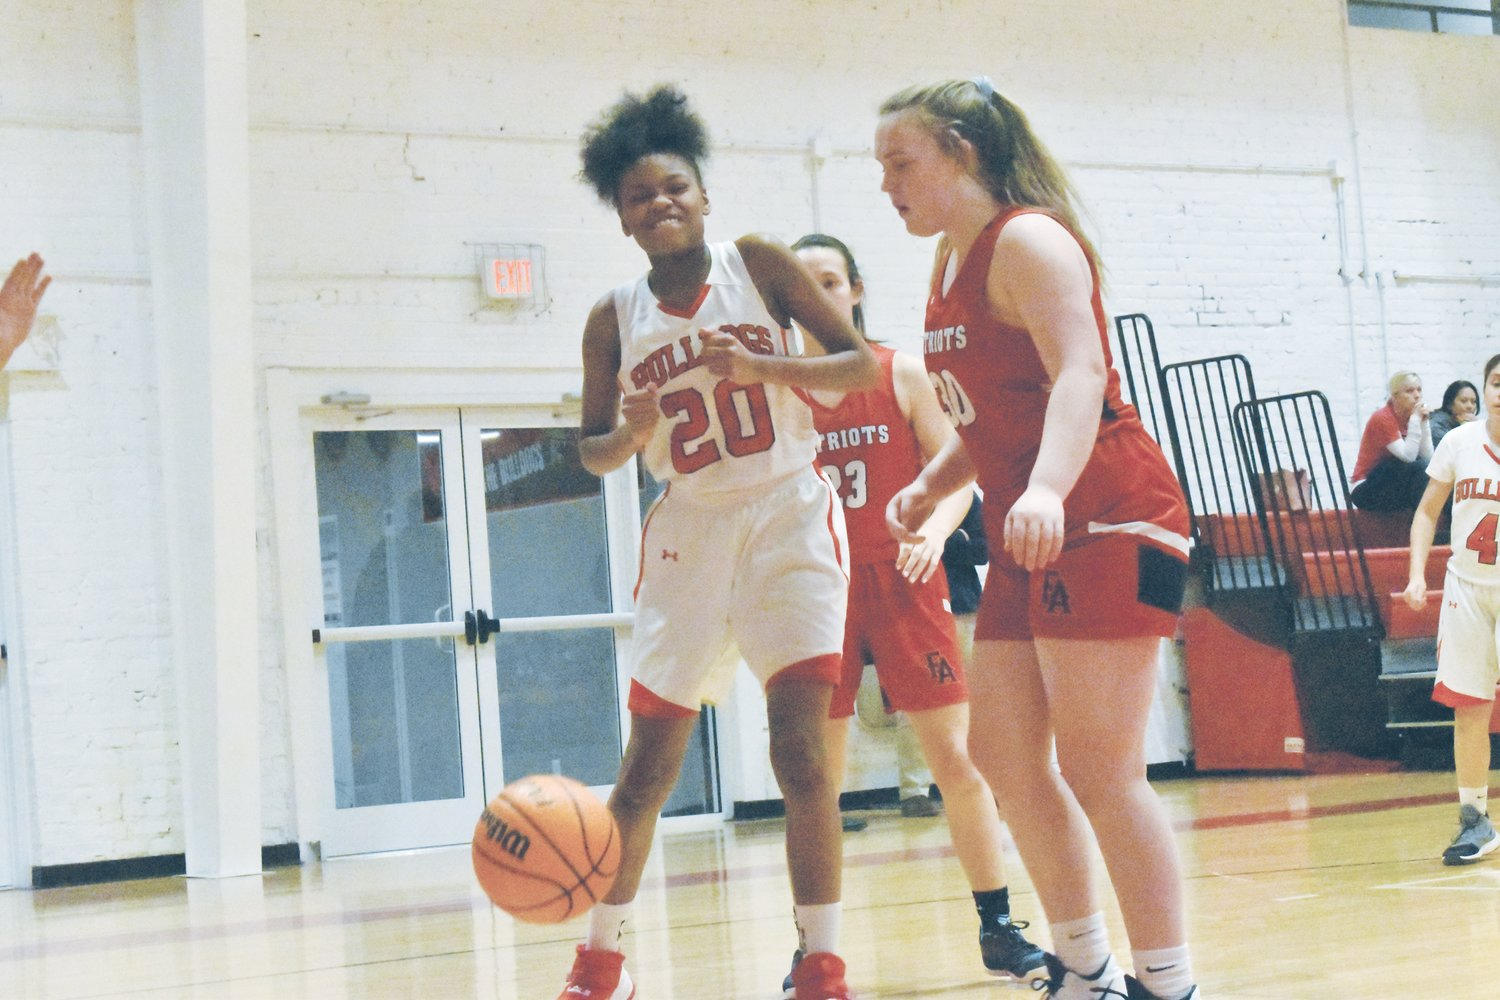 The Lady Bulldogs' Michayaj Jay (left) reacts to the ball going out of bounds in Roxboro Community School's Jan. 21 contest against Franklin Academy. Jay earned all-conference honors as the Lady Bulldogs' top shot blocker, swatting away 40 attempts.